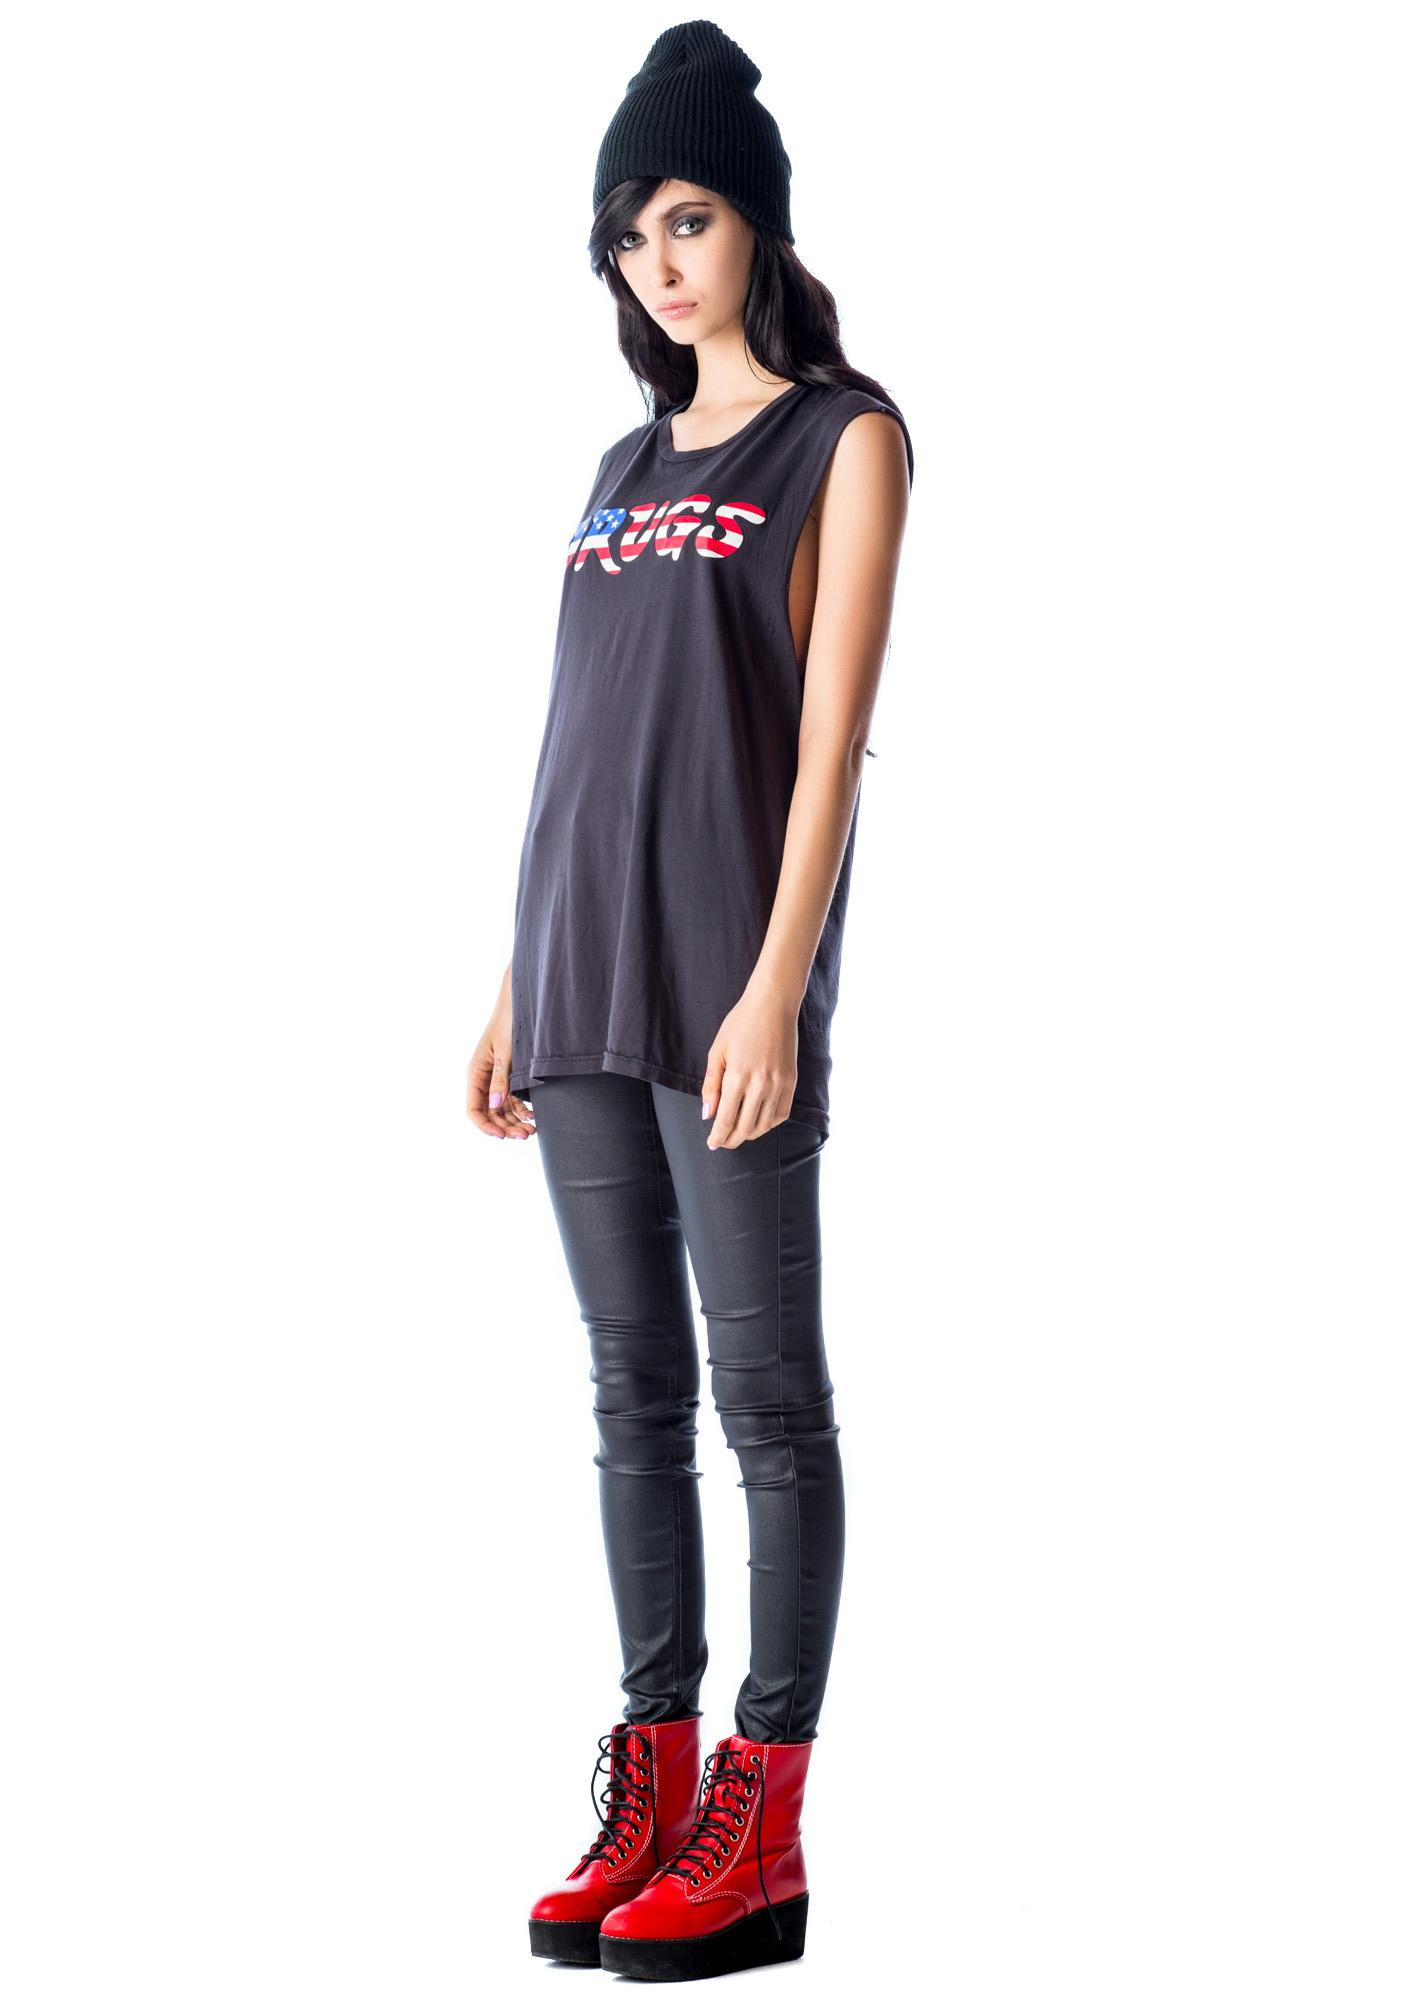 Lip Service USA Drugs Sleeveless Tee